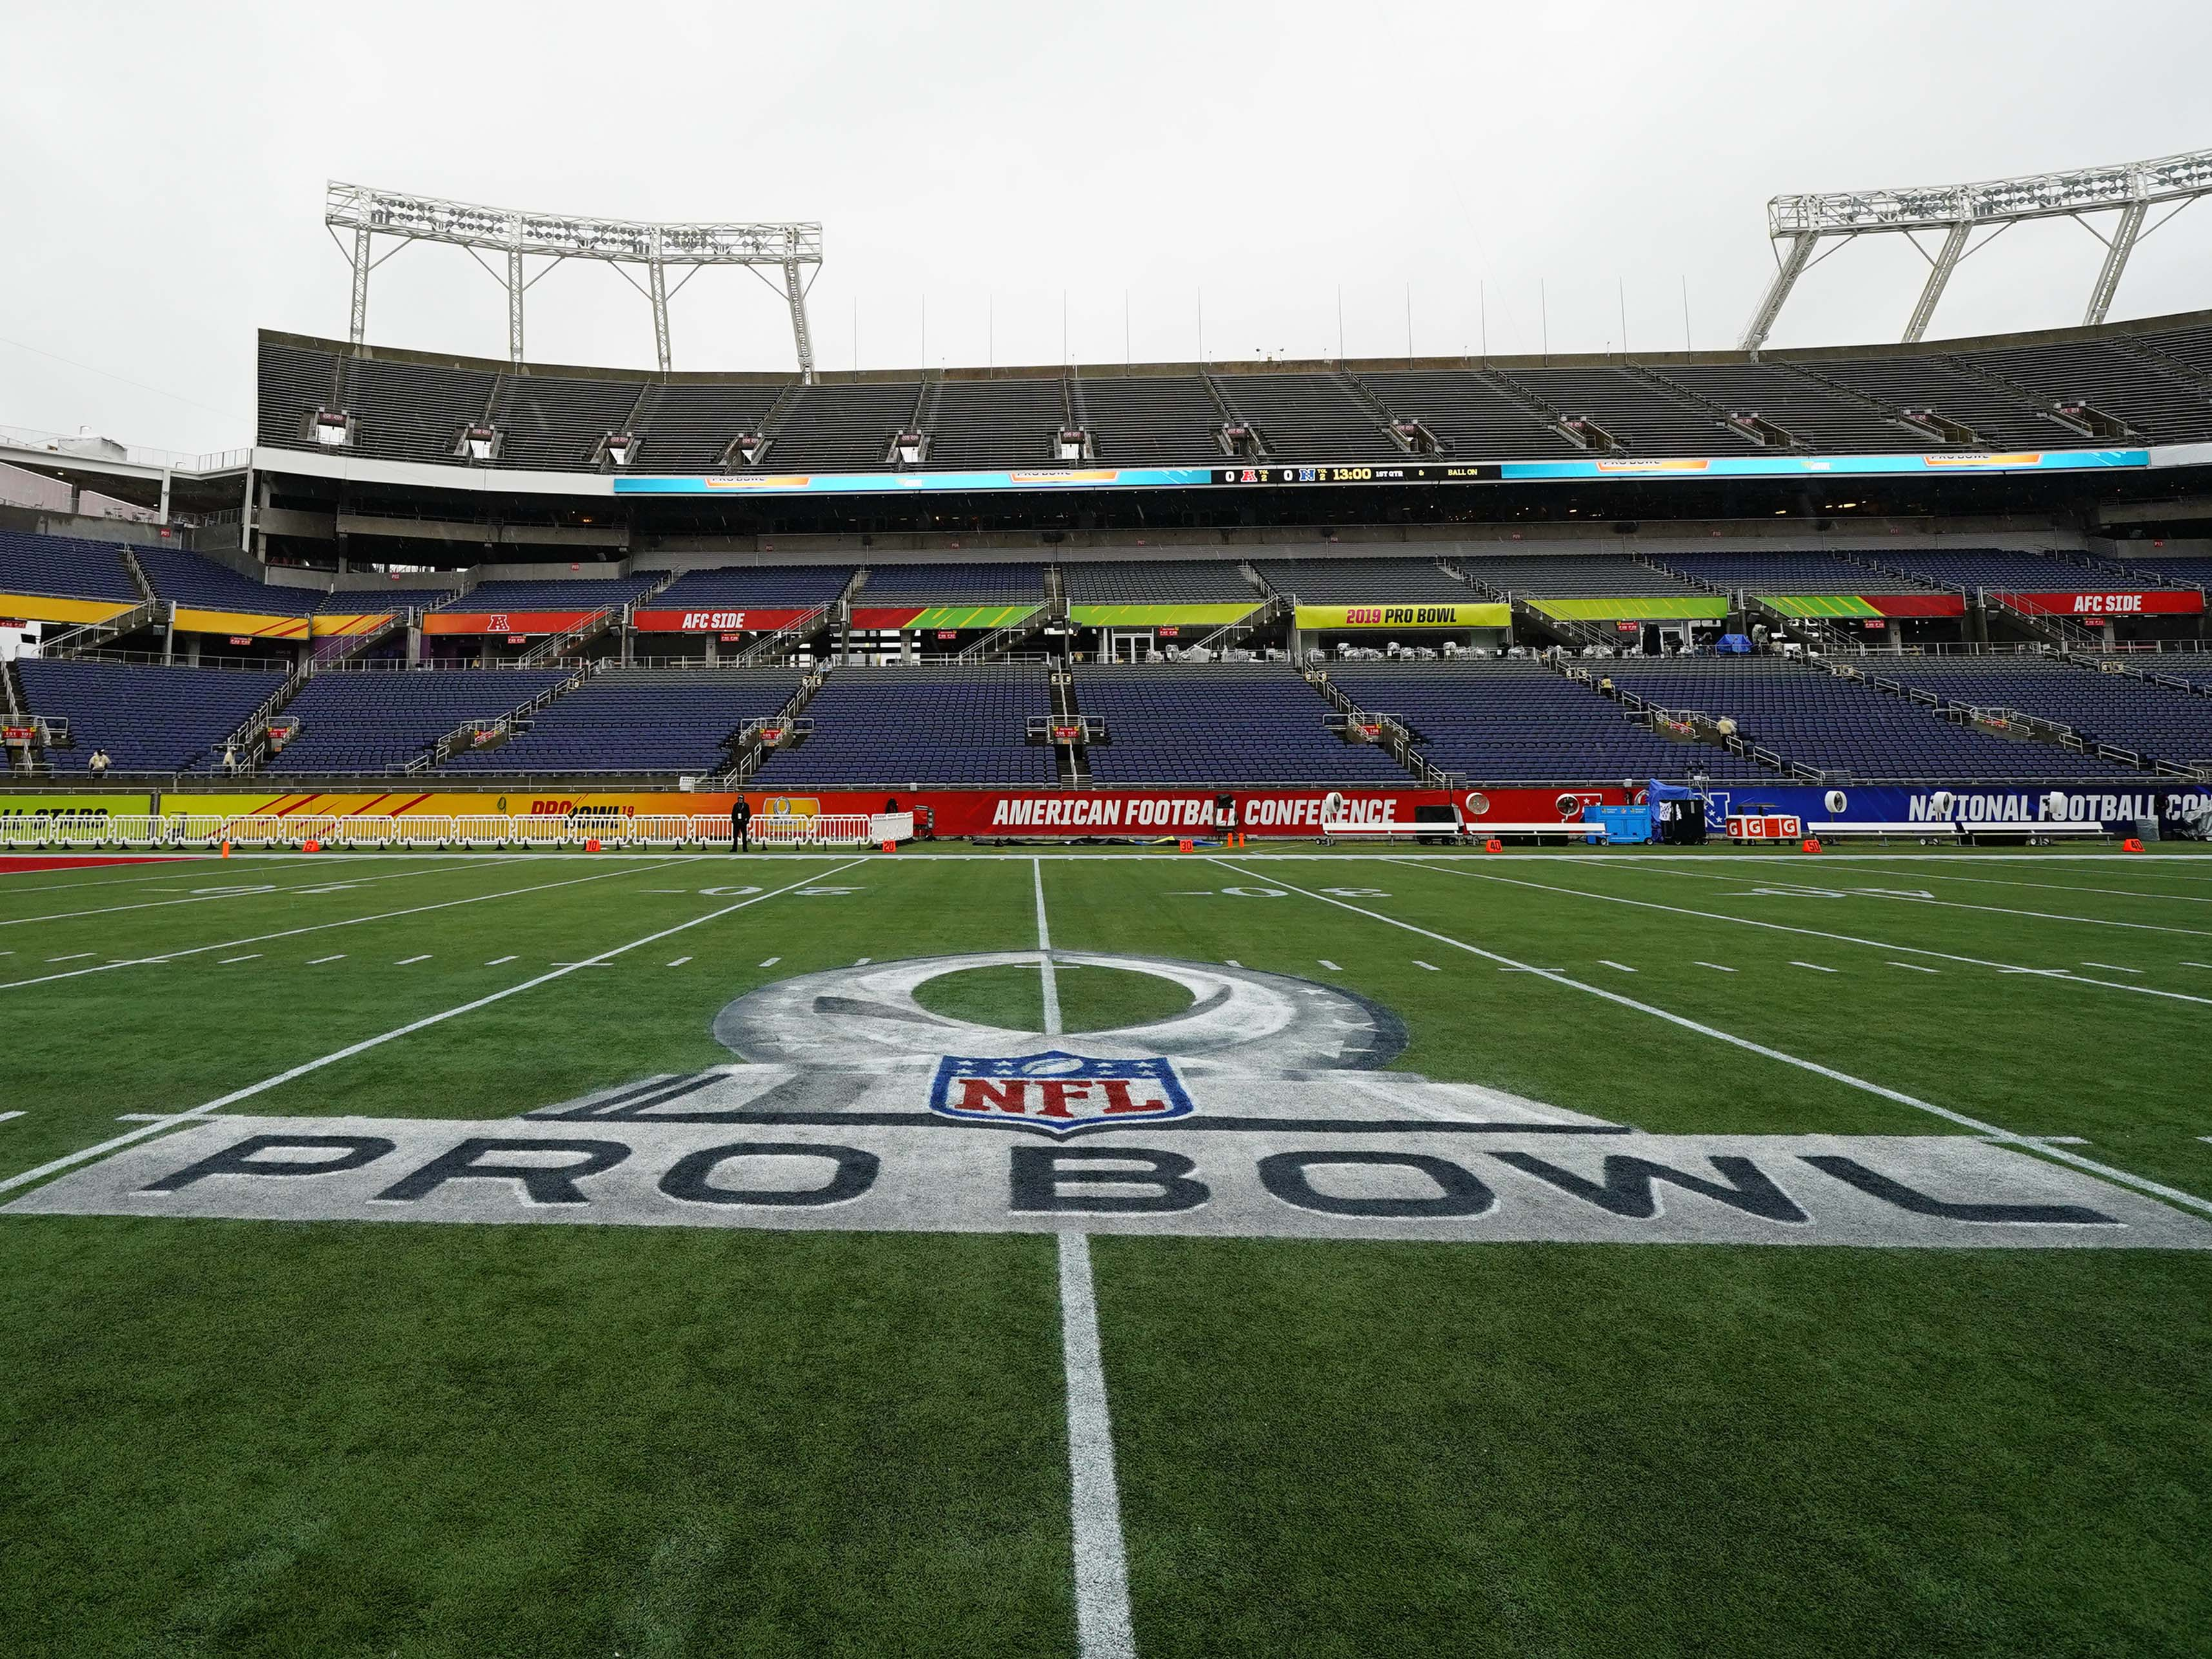 Pro Bowl 2020 Schedule 20 Pro Bowl returns to Orlando for fourth straight year   NFL.com